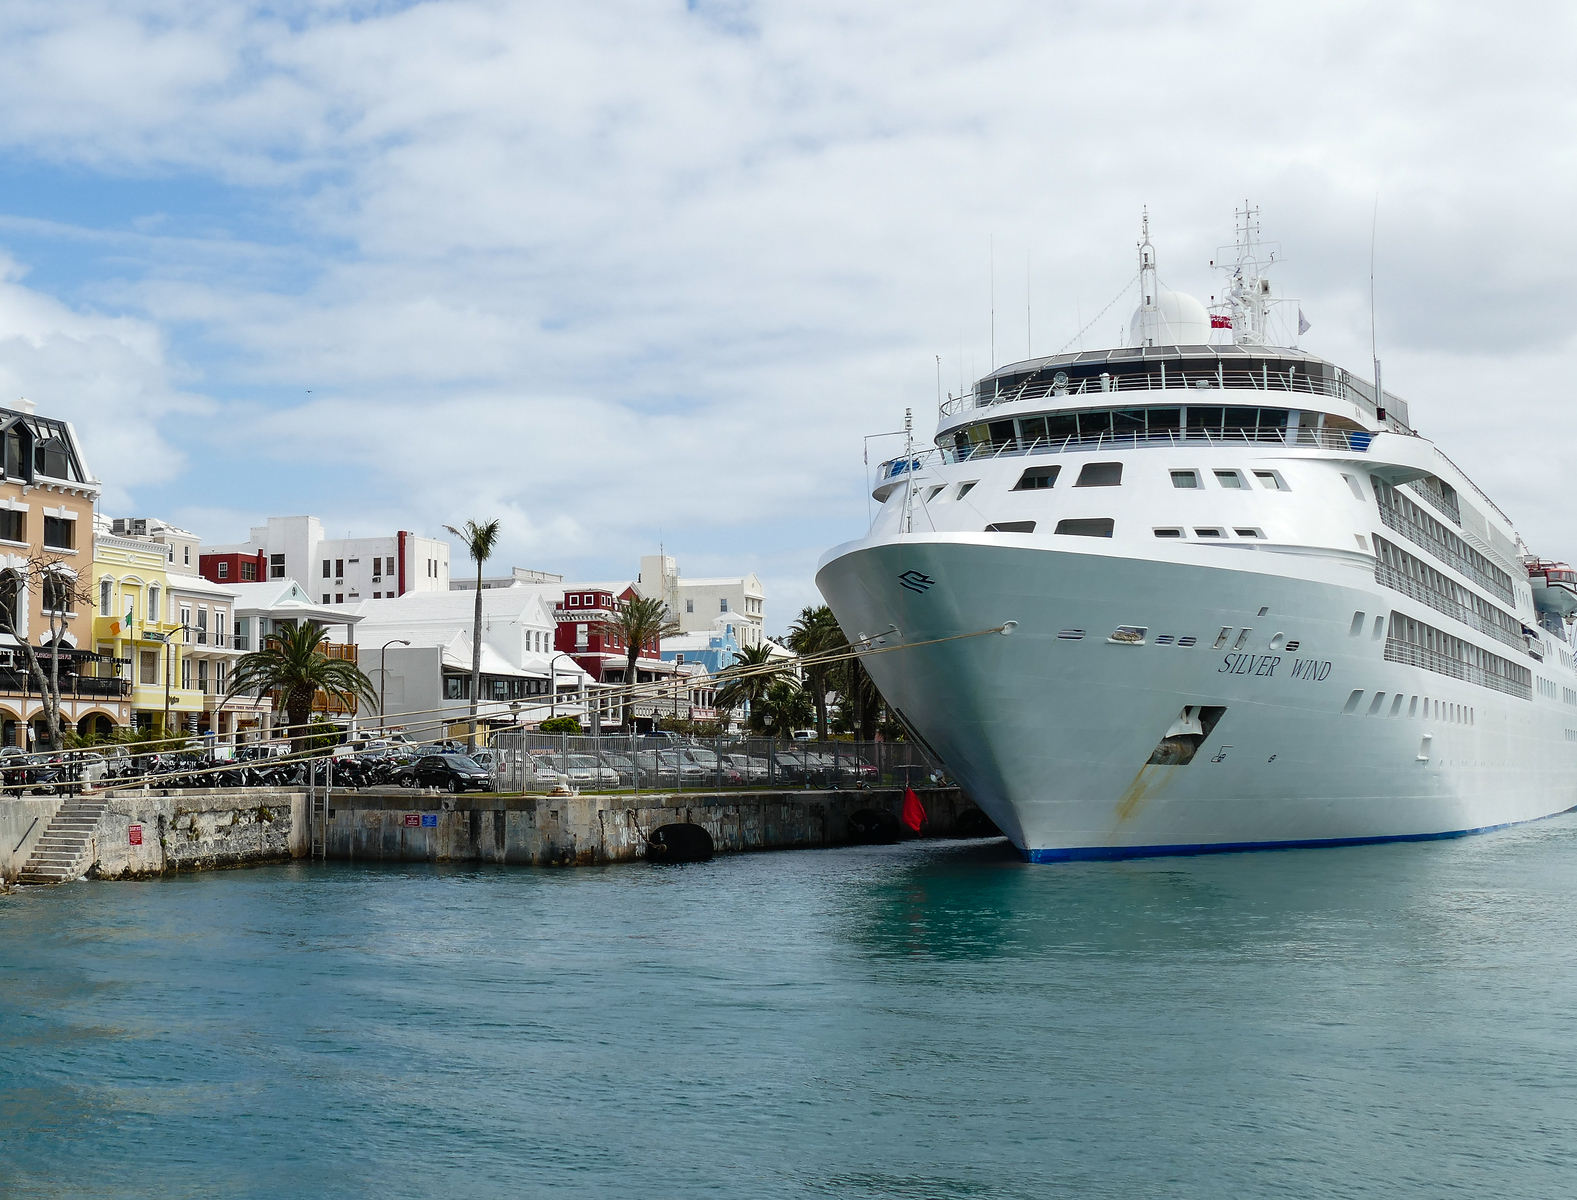 Cruise ship at a dock with colonial buildings lining the sidewalk in Bermuda.